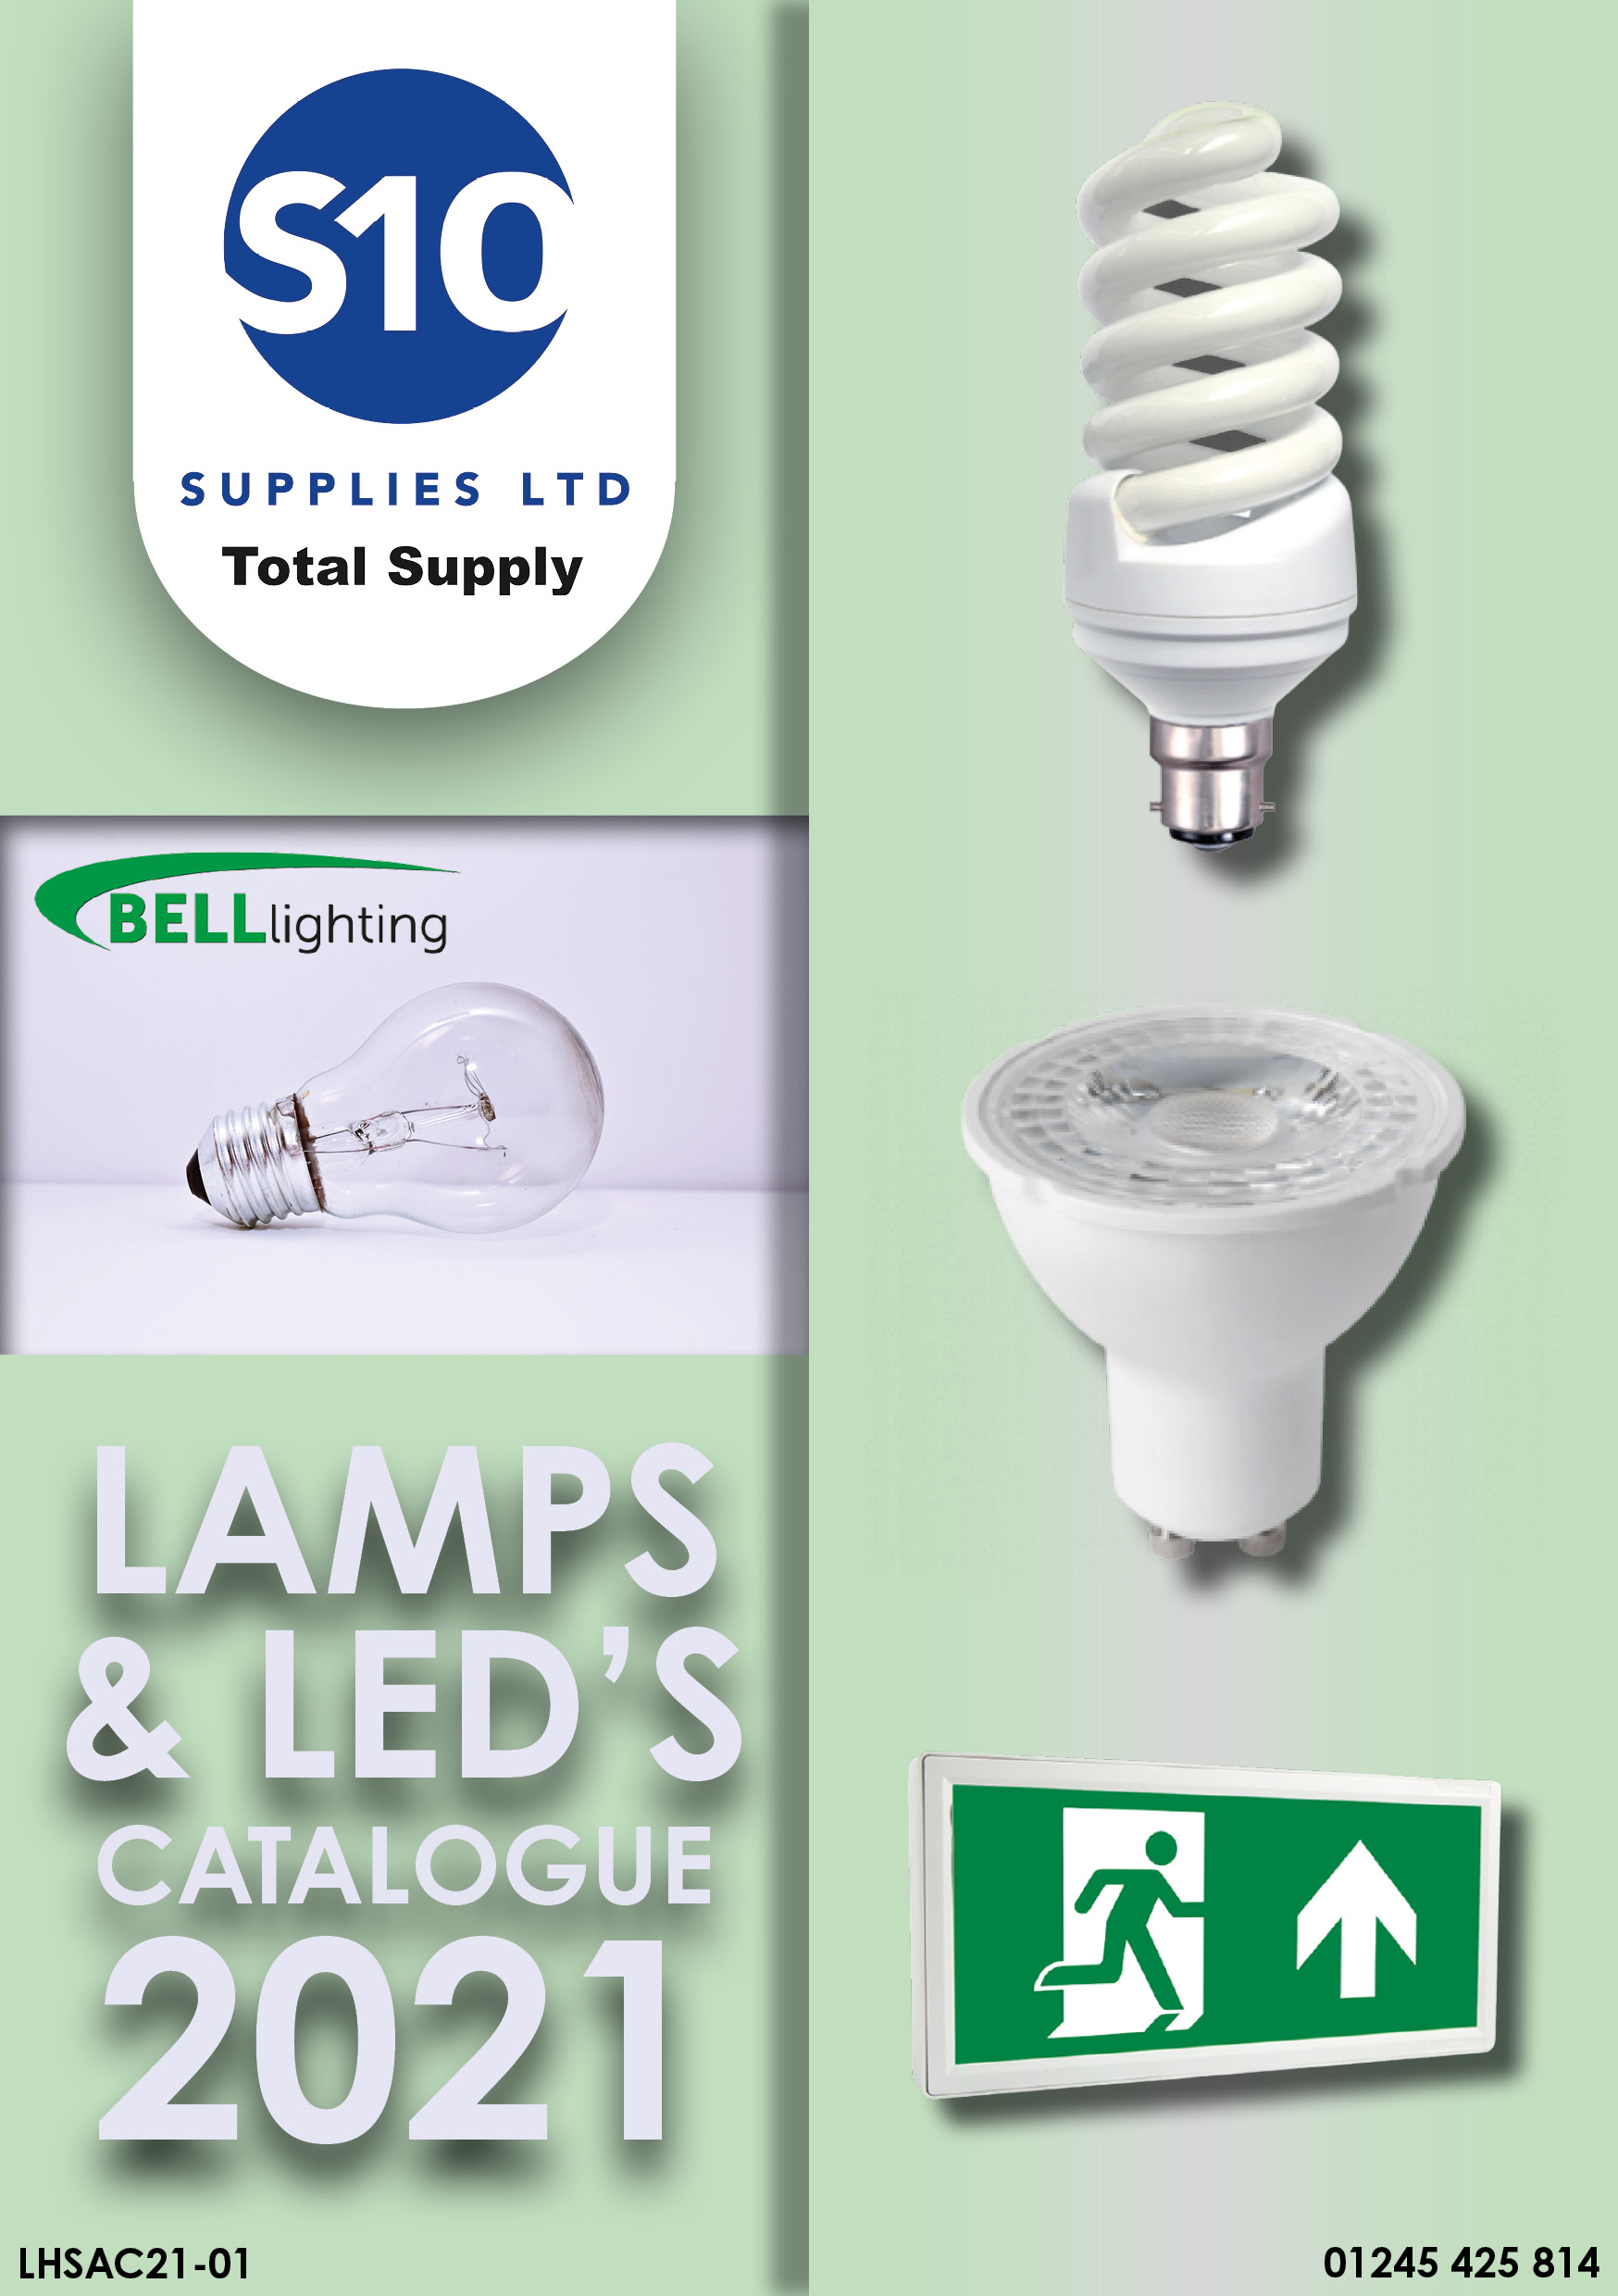 Lamps & Fittings 2020 Front Cover